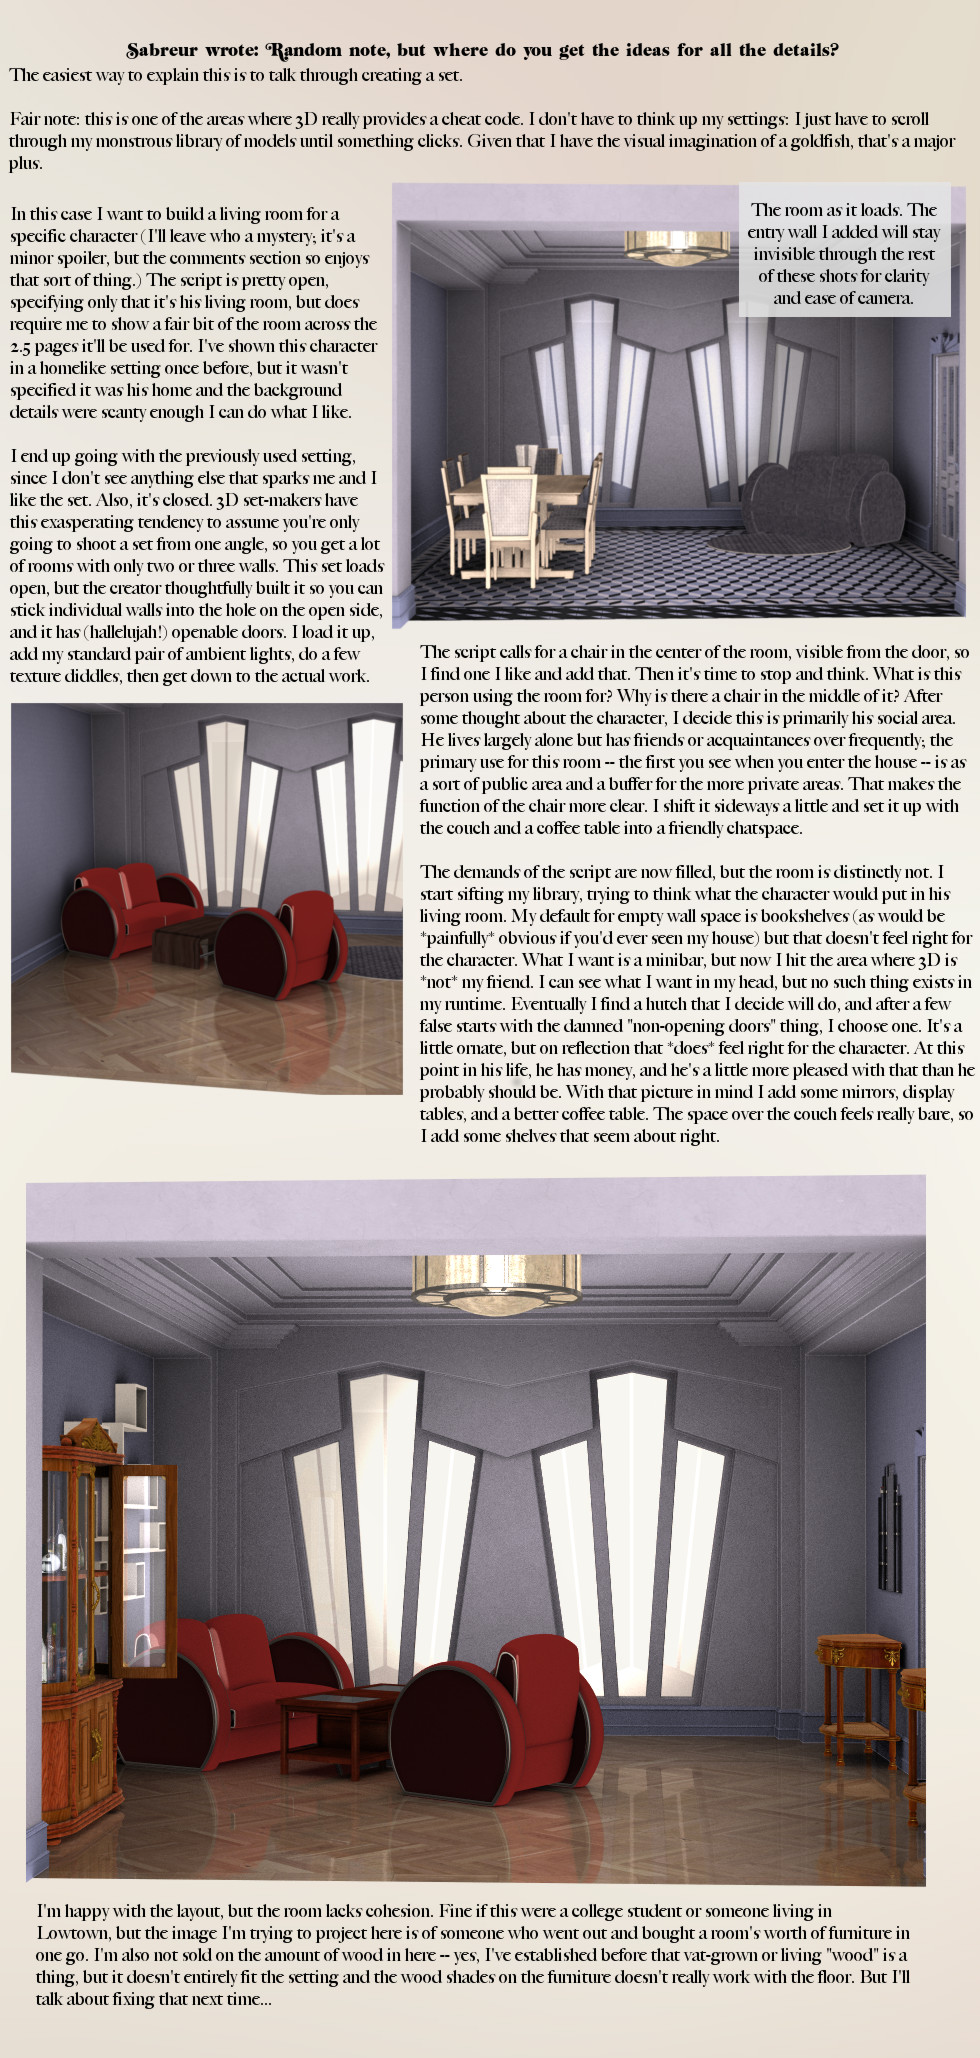 How To Make A Room, Part 1